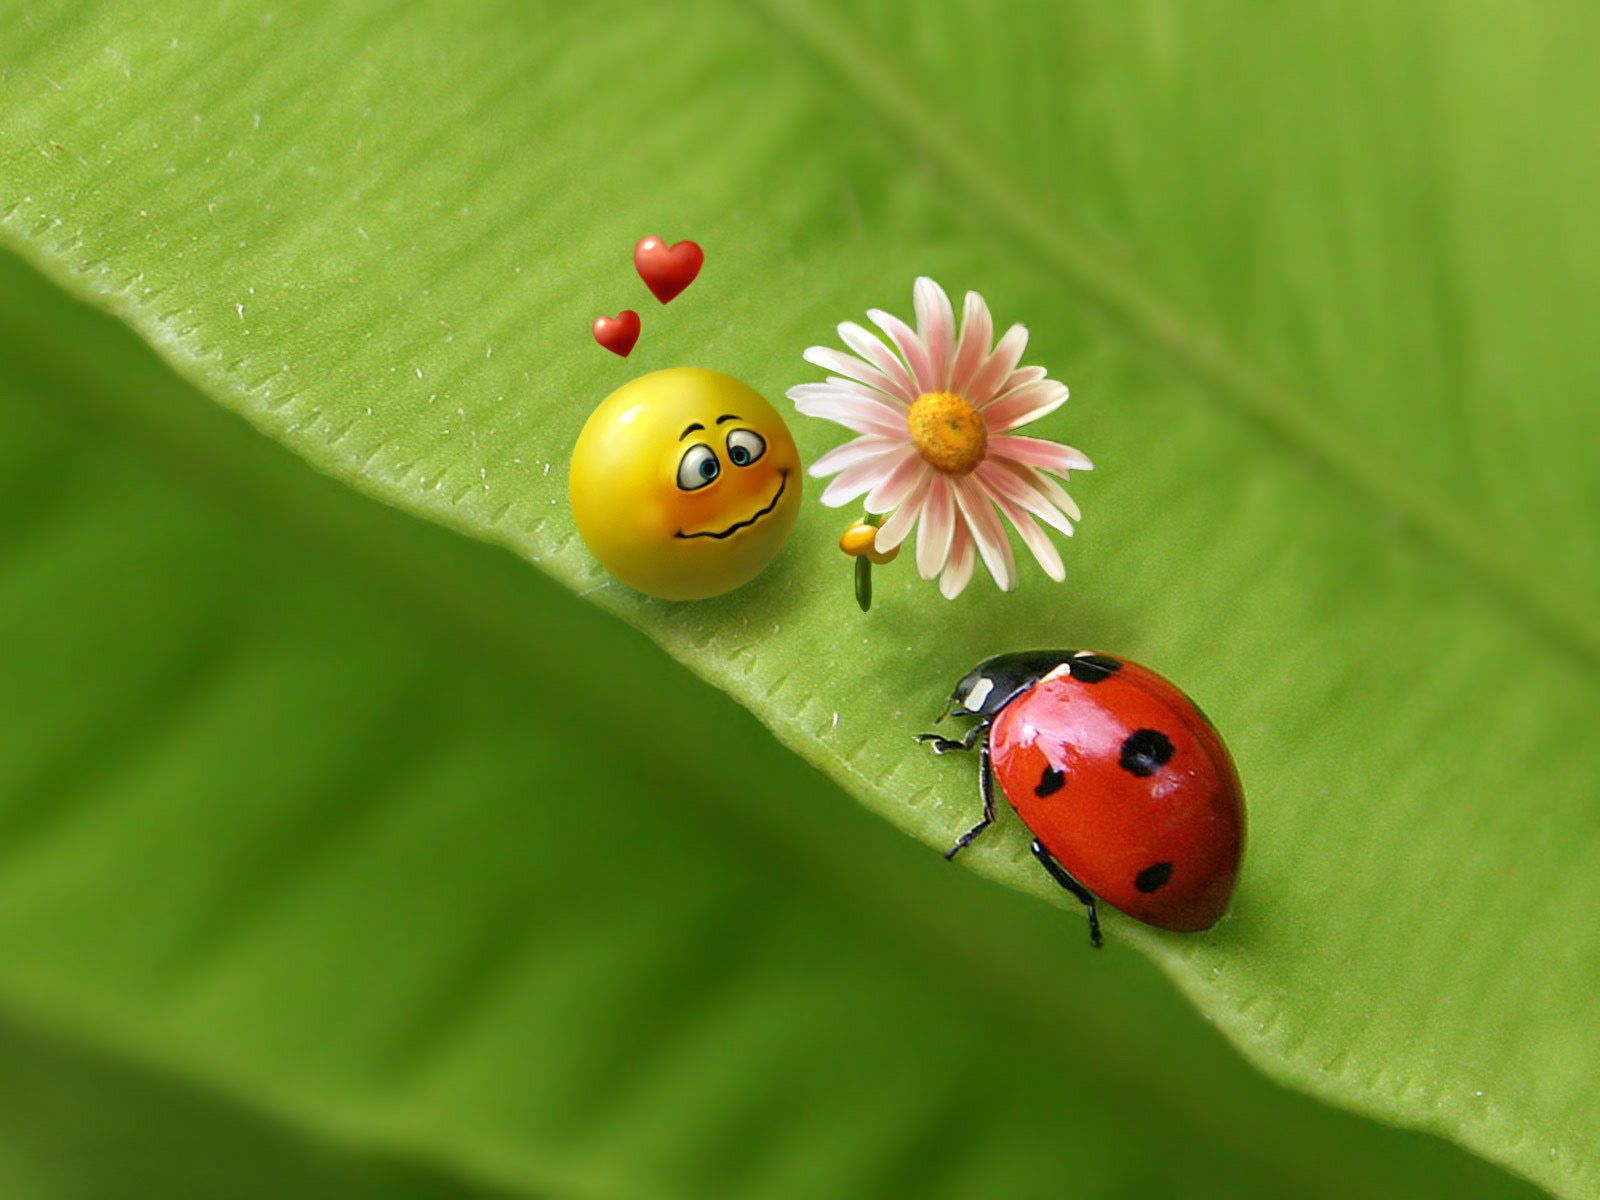 Pin by Victor Lee on Insects Ladybug Love wallpaper Ladybug picnic 1600x1200